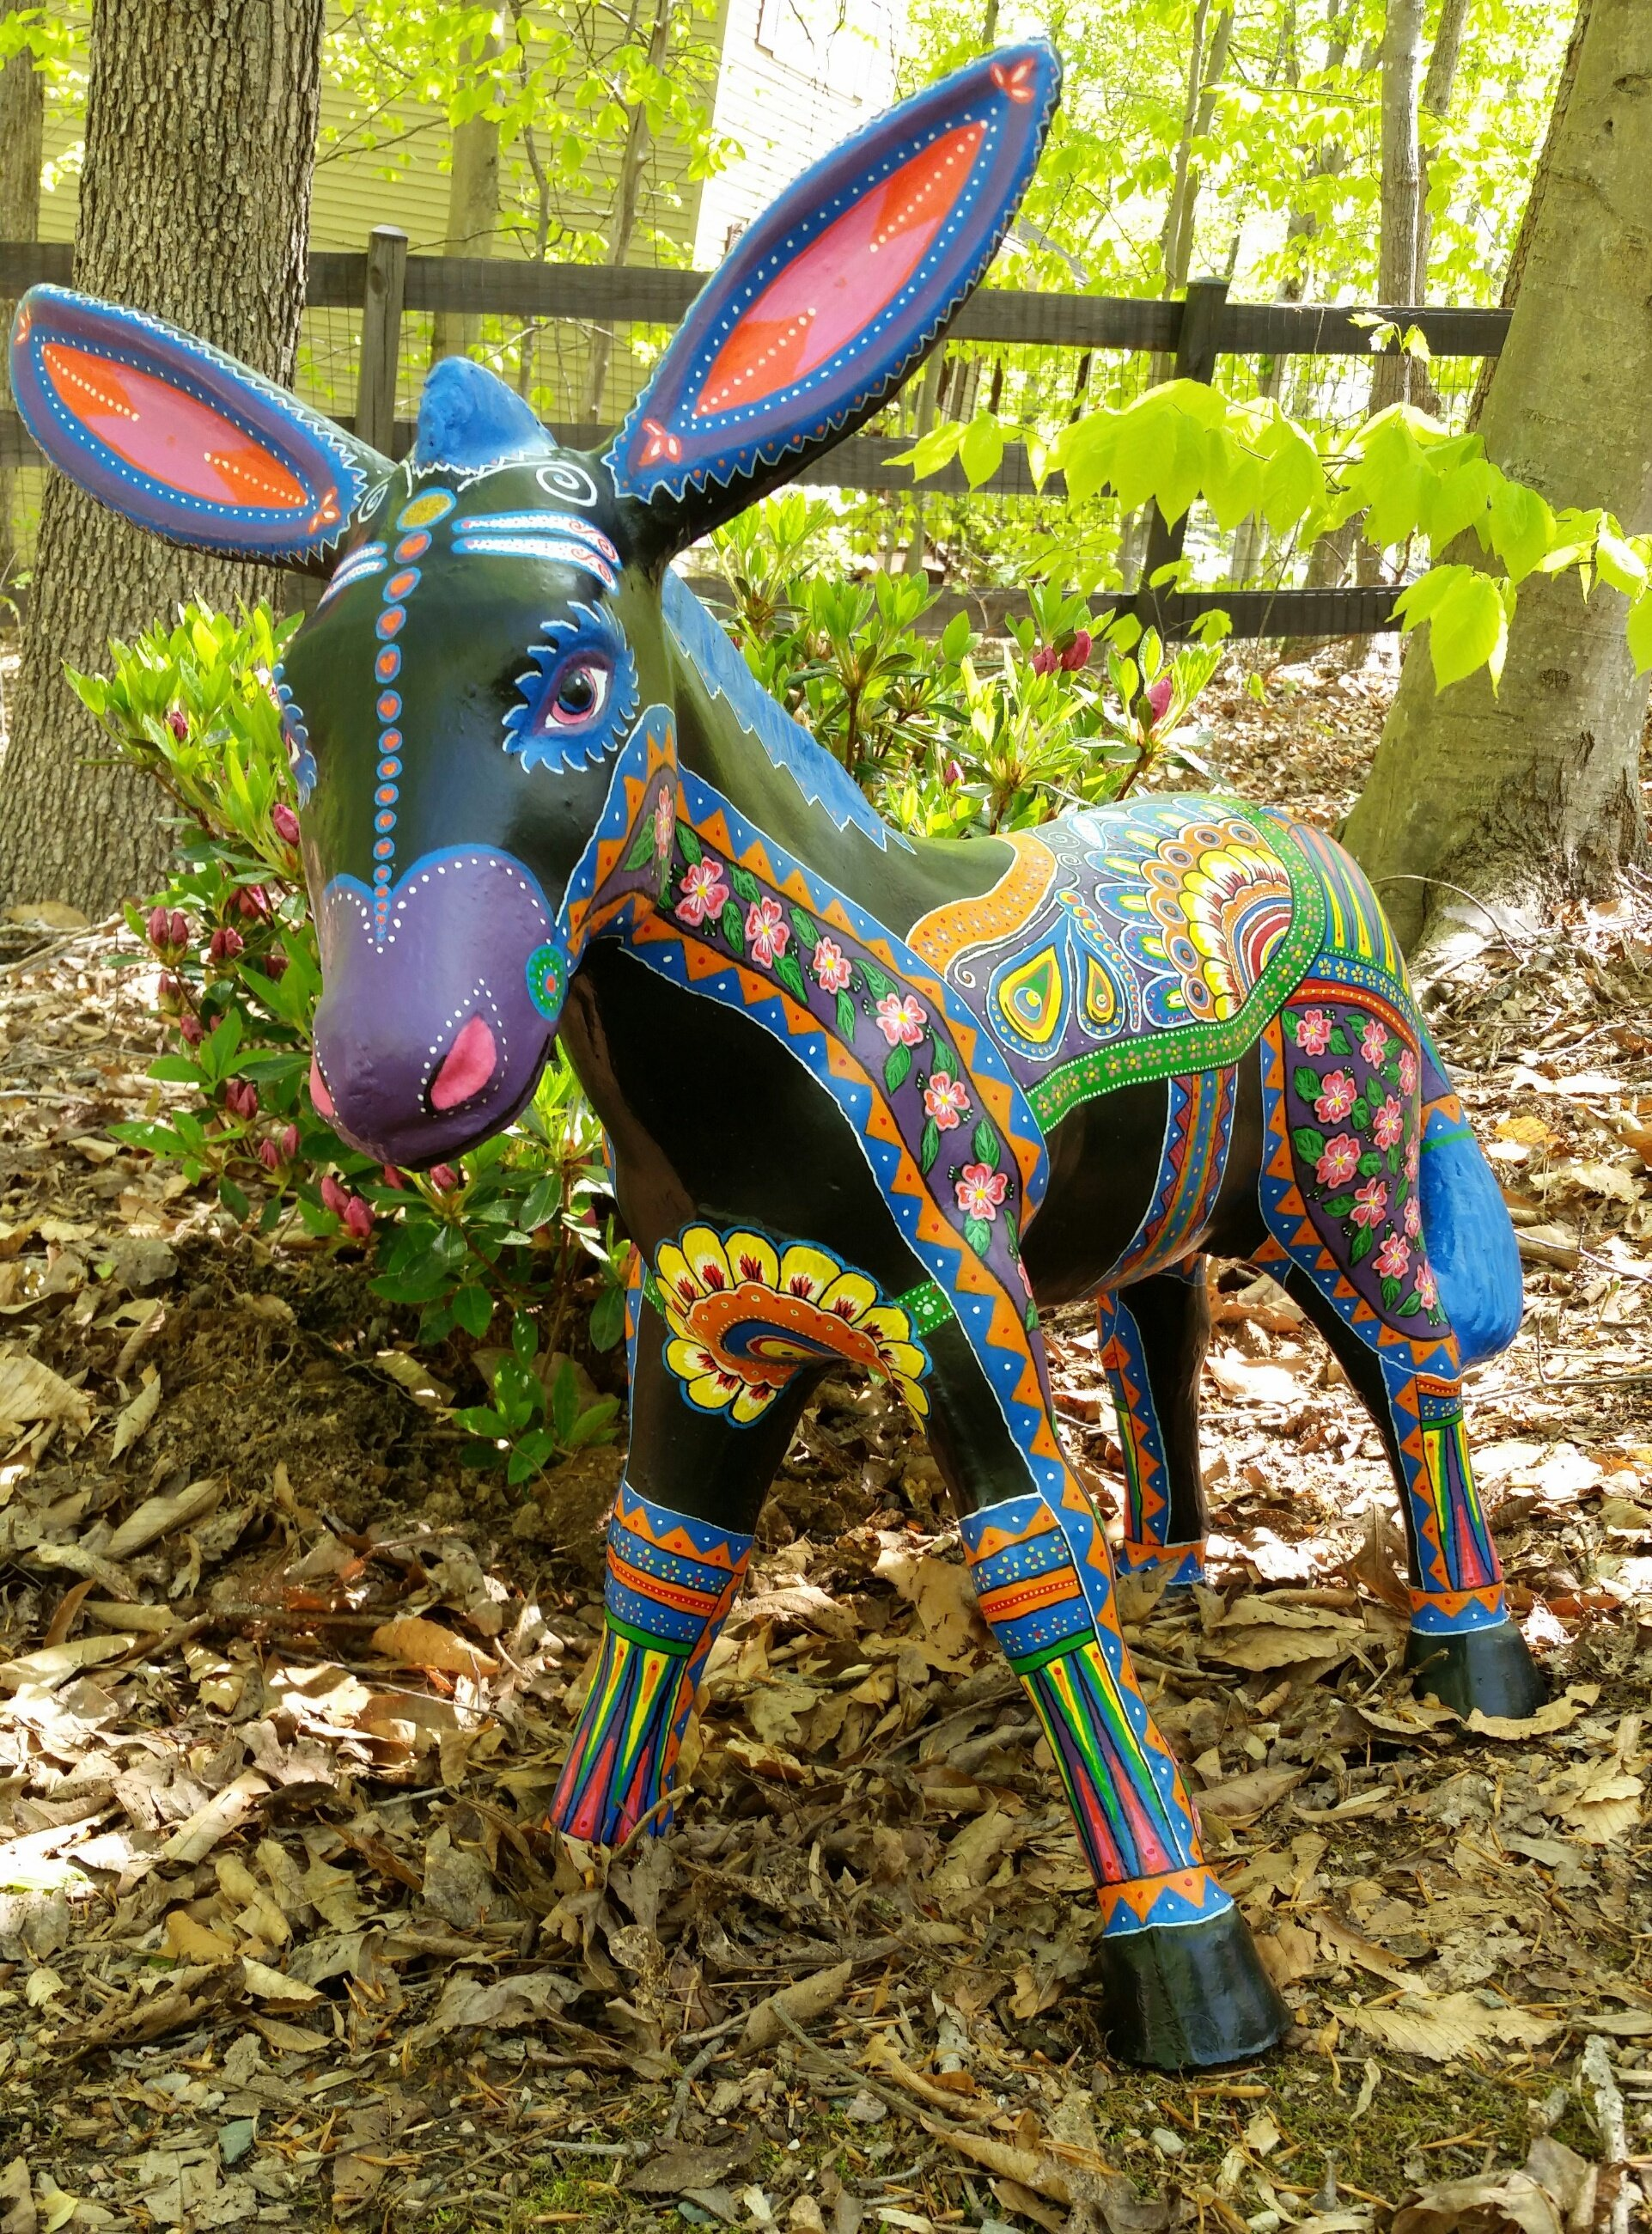 Wonky Donkey is up for  bid through an auction with Green Dogs Unleashed for more info go to the Home page.